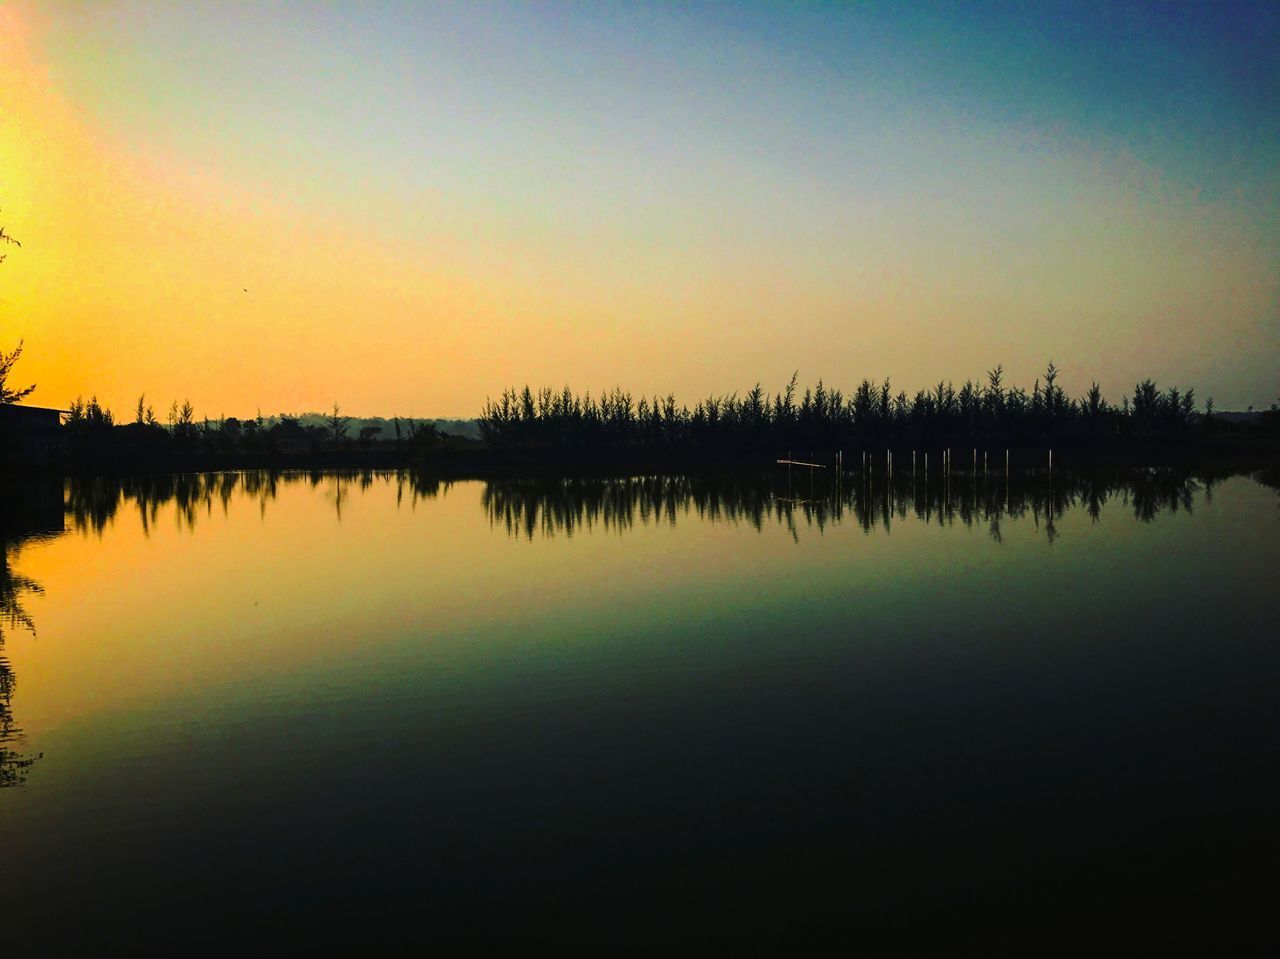 reflection, water, lake, tranquil scene, standing water, tranquility, nature, beauty in nature, scenics, silhouette, sunset, waterfront, outdoors, no people, sky, symmetry, day